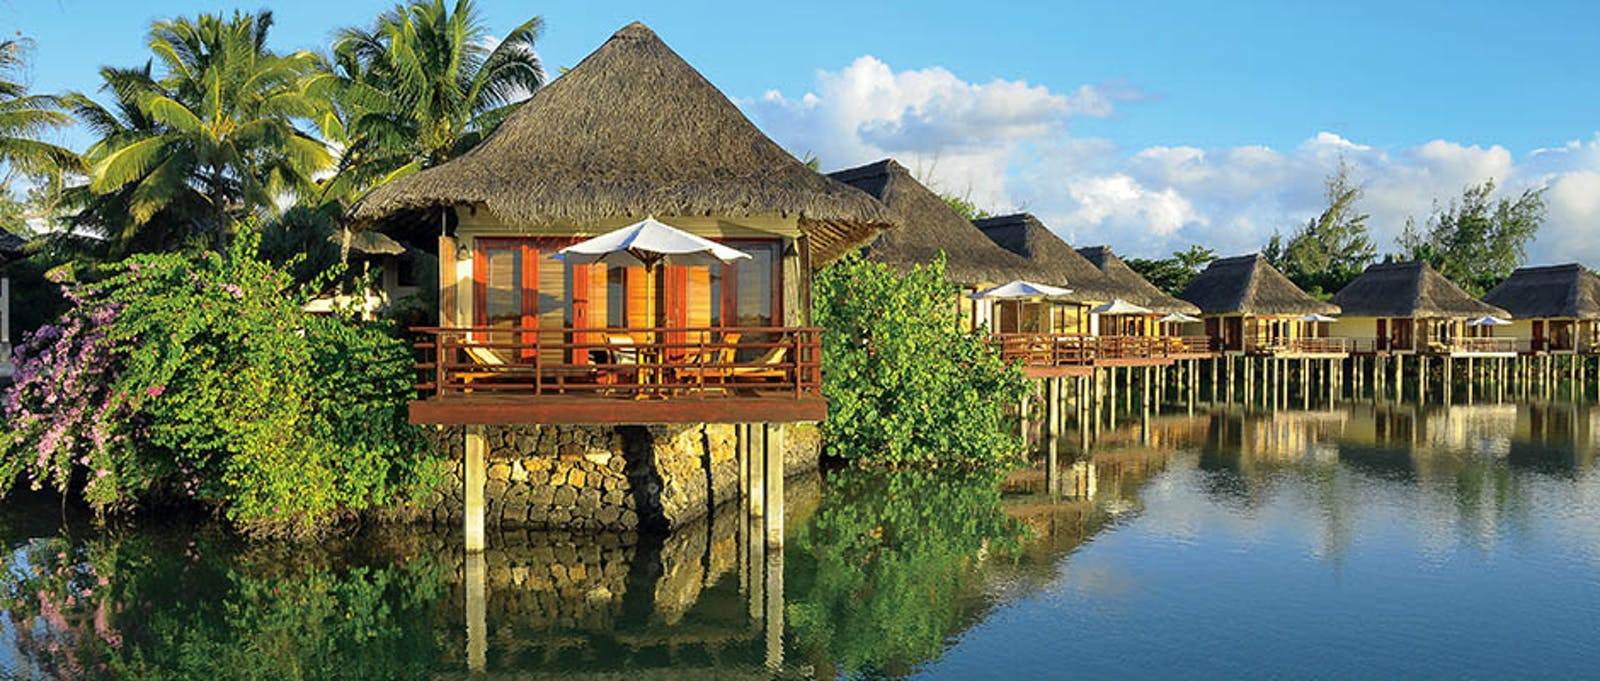 Villa on Stilts at Constance Prince Maurice, Mauritius